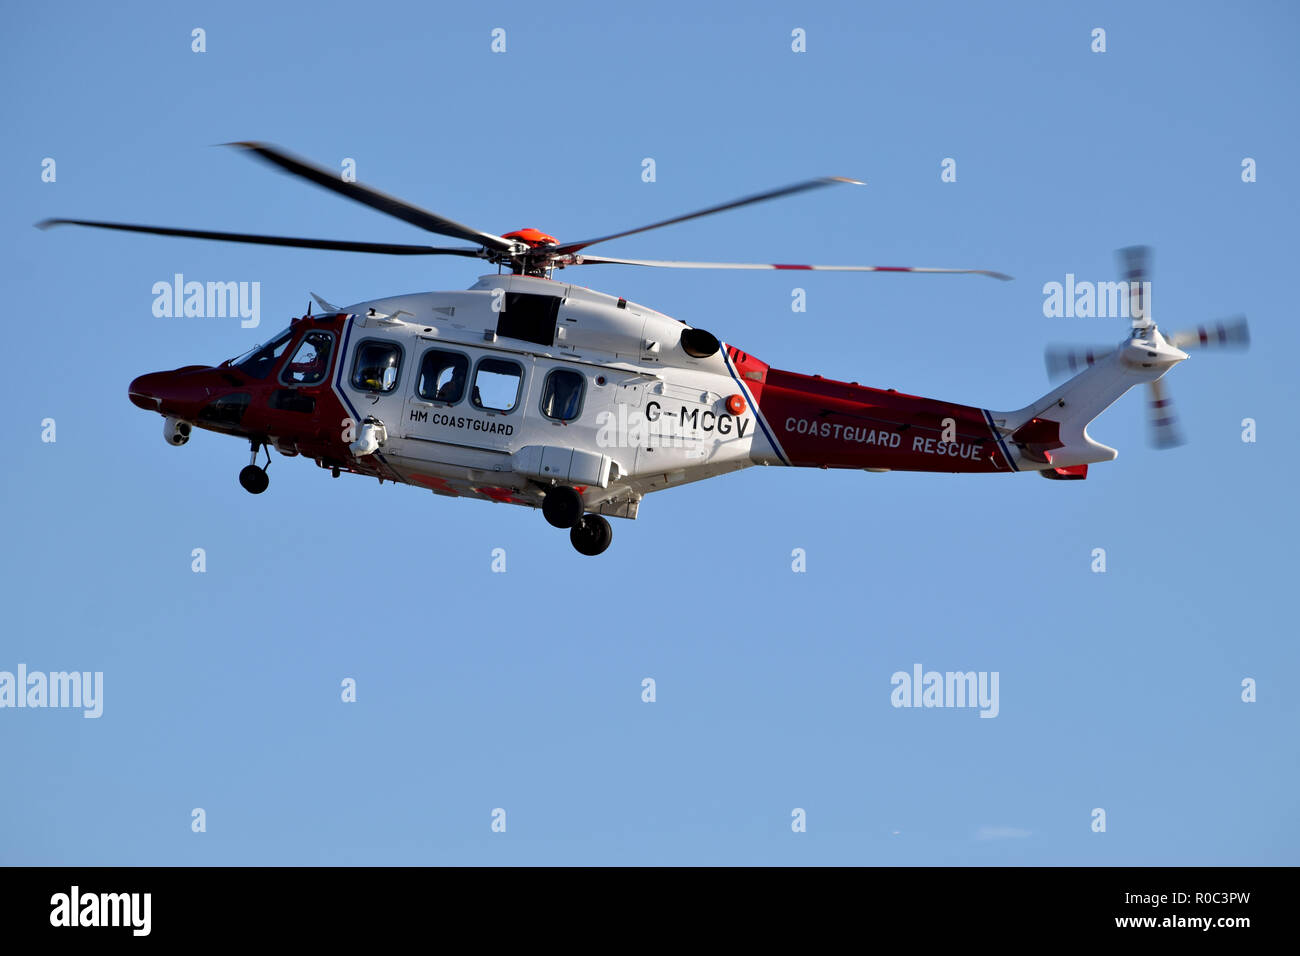 Coastguard rescue helicopter taking part in a search and rescue mission over the river Thames in East London Stock Photo